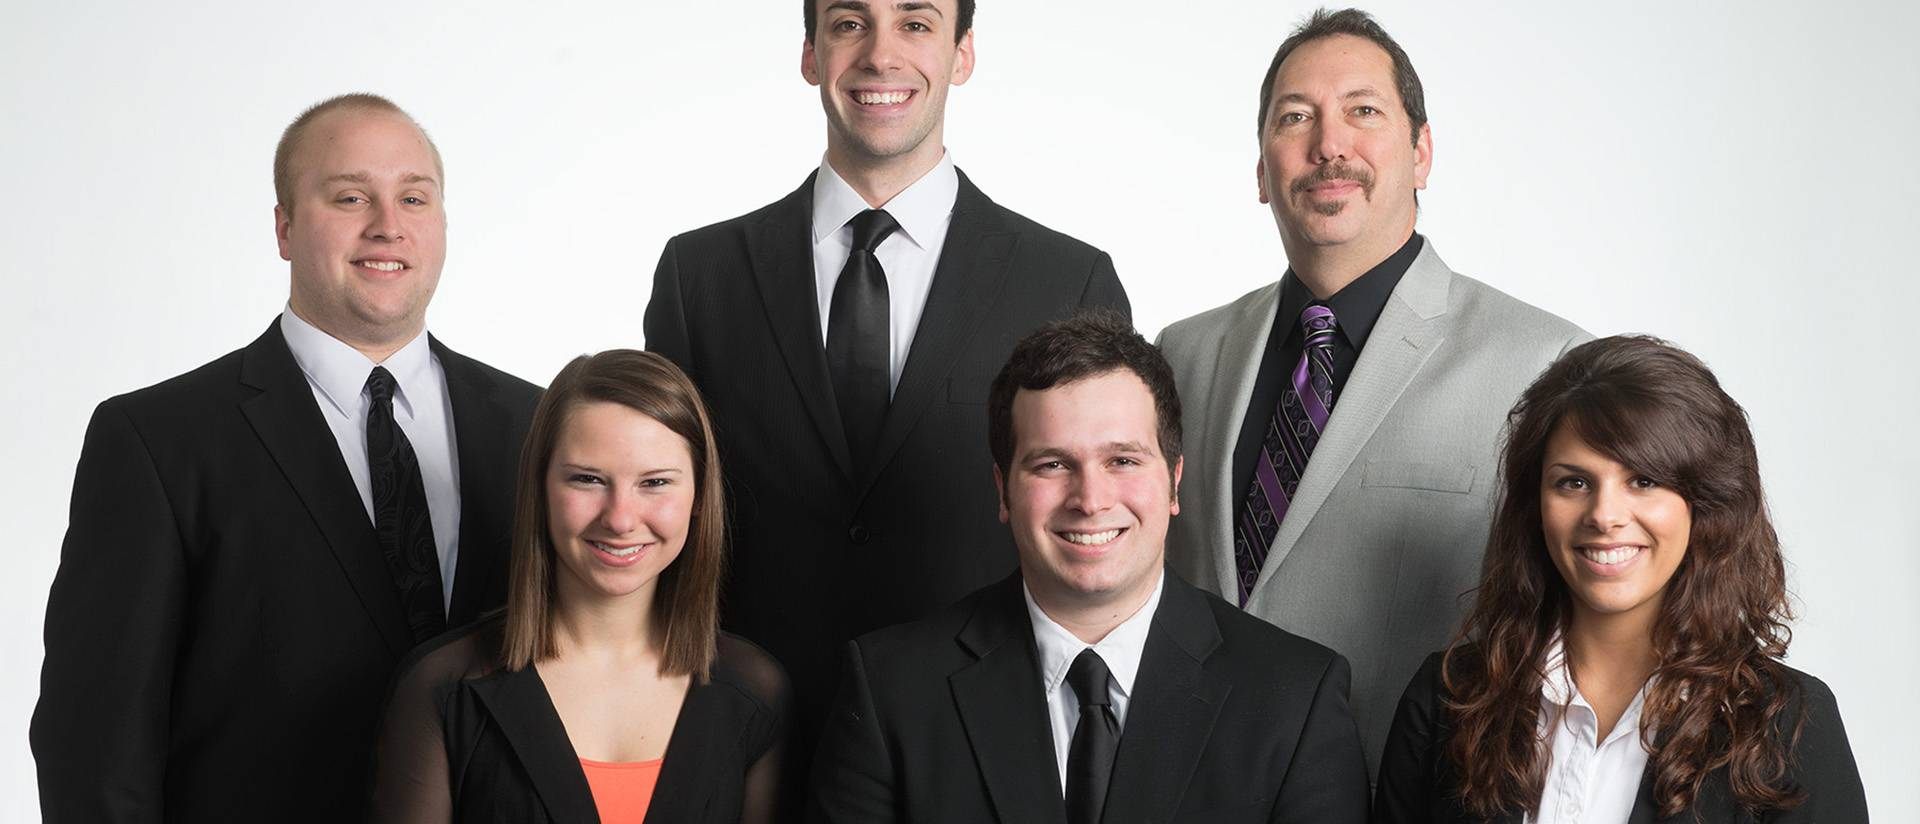 Back row, left to right: Phillip Dickinson, Nathaniel Guralski, Dr. Scott Swanson. Front row, left to right: Katherine Hammel, Michael Boucher, Megan Lipari.